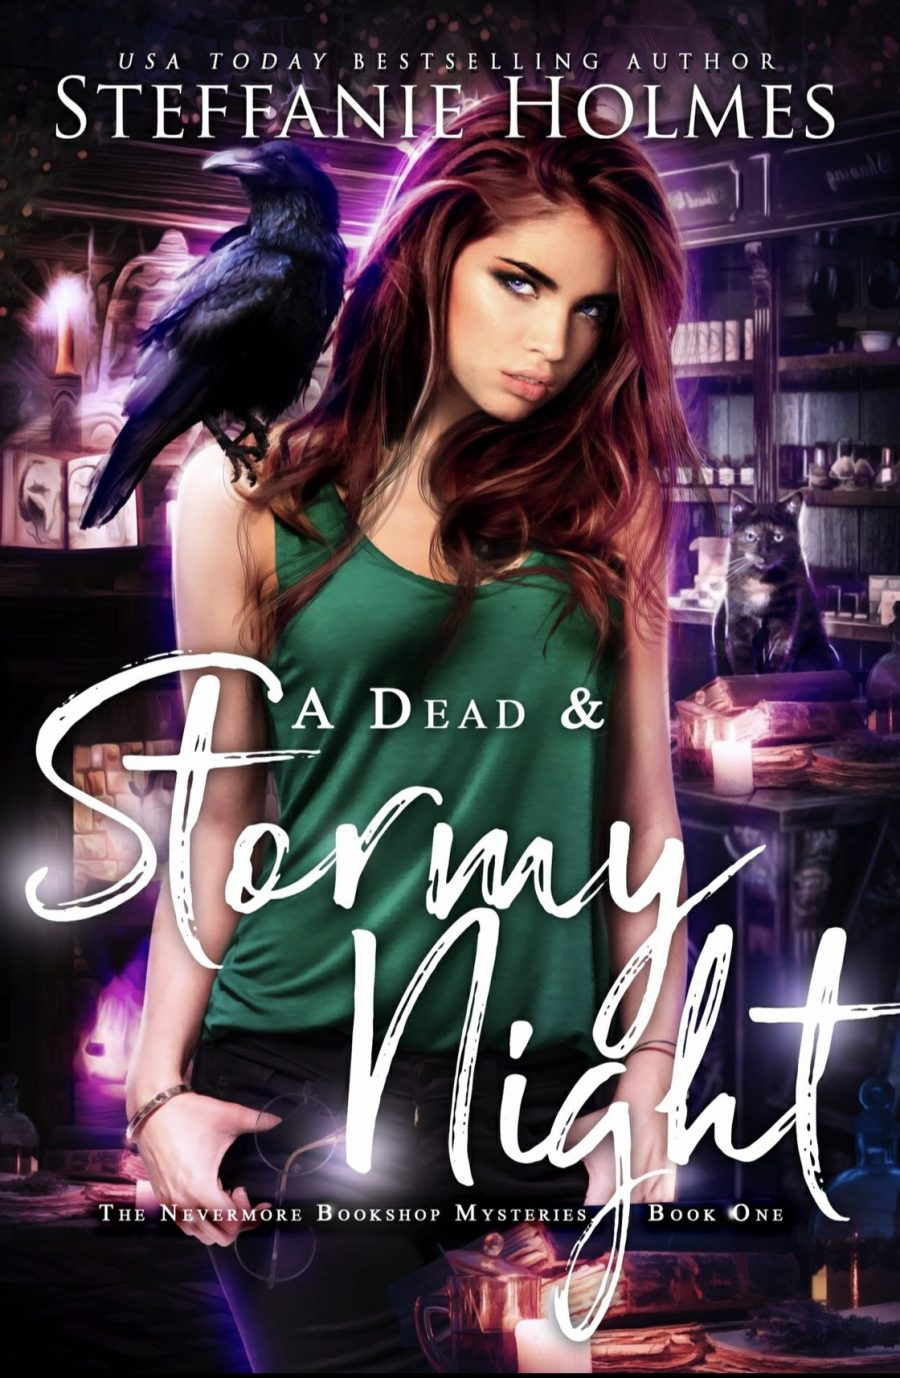 A Dead and Stormy Night *The Nevermore Bookshop Mysteries Book 1* by Steffanie Holmes - A Book Review #BookReview #WhyChoose #RH #SlowBurn #Holmes #Paranormal #Bookstore